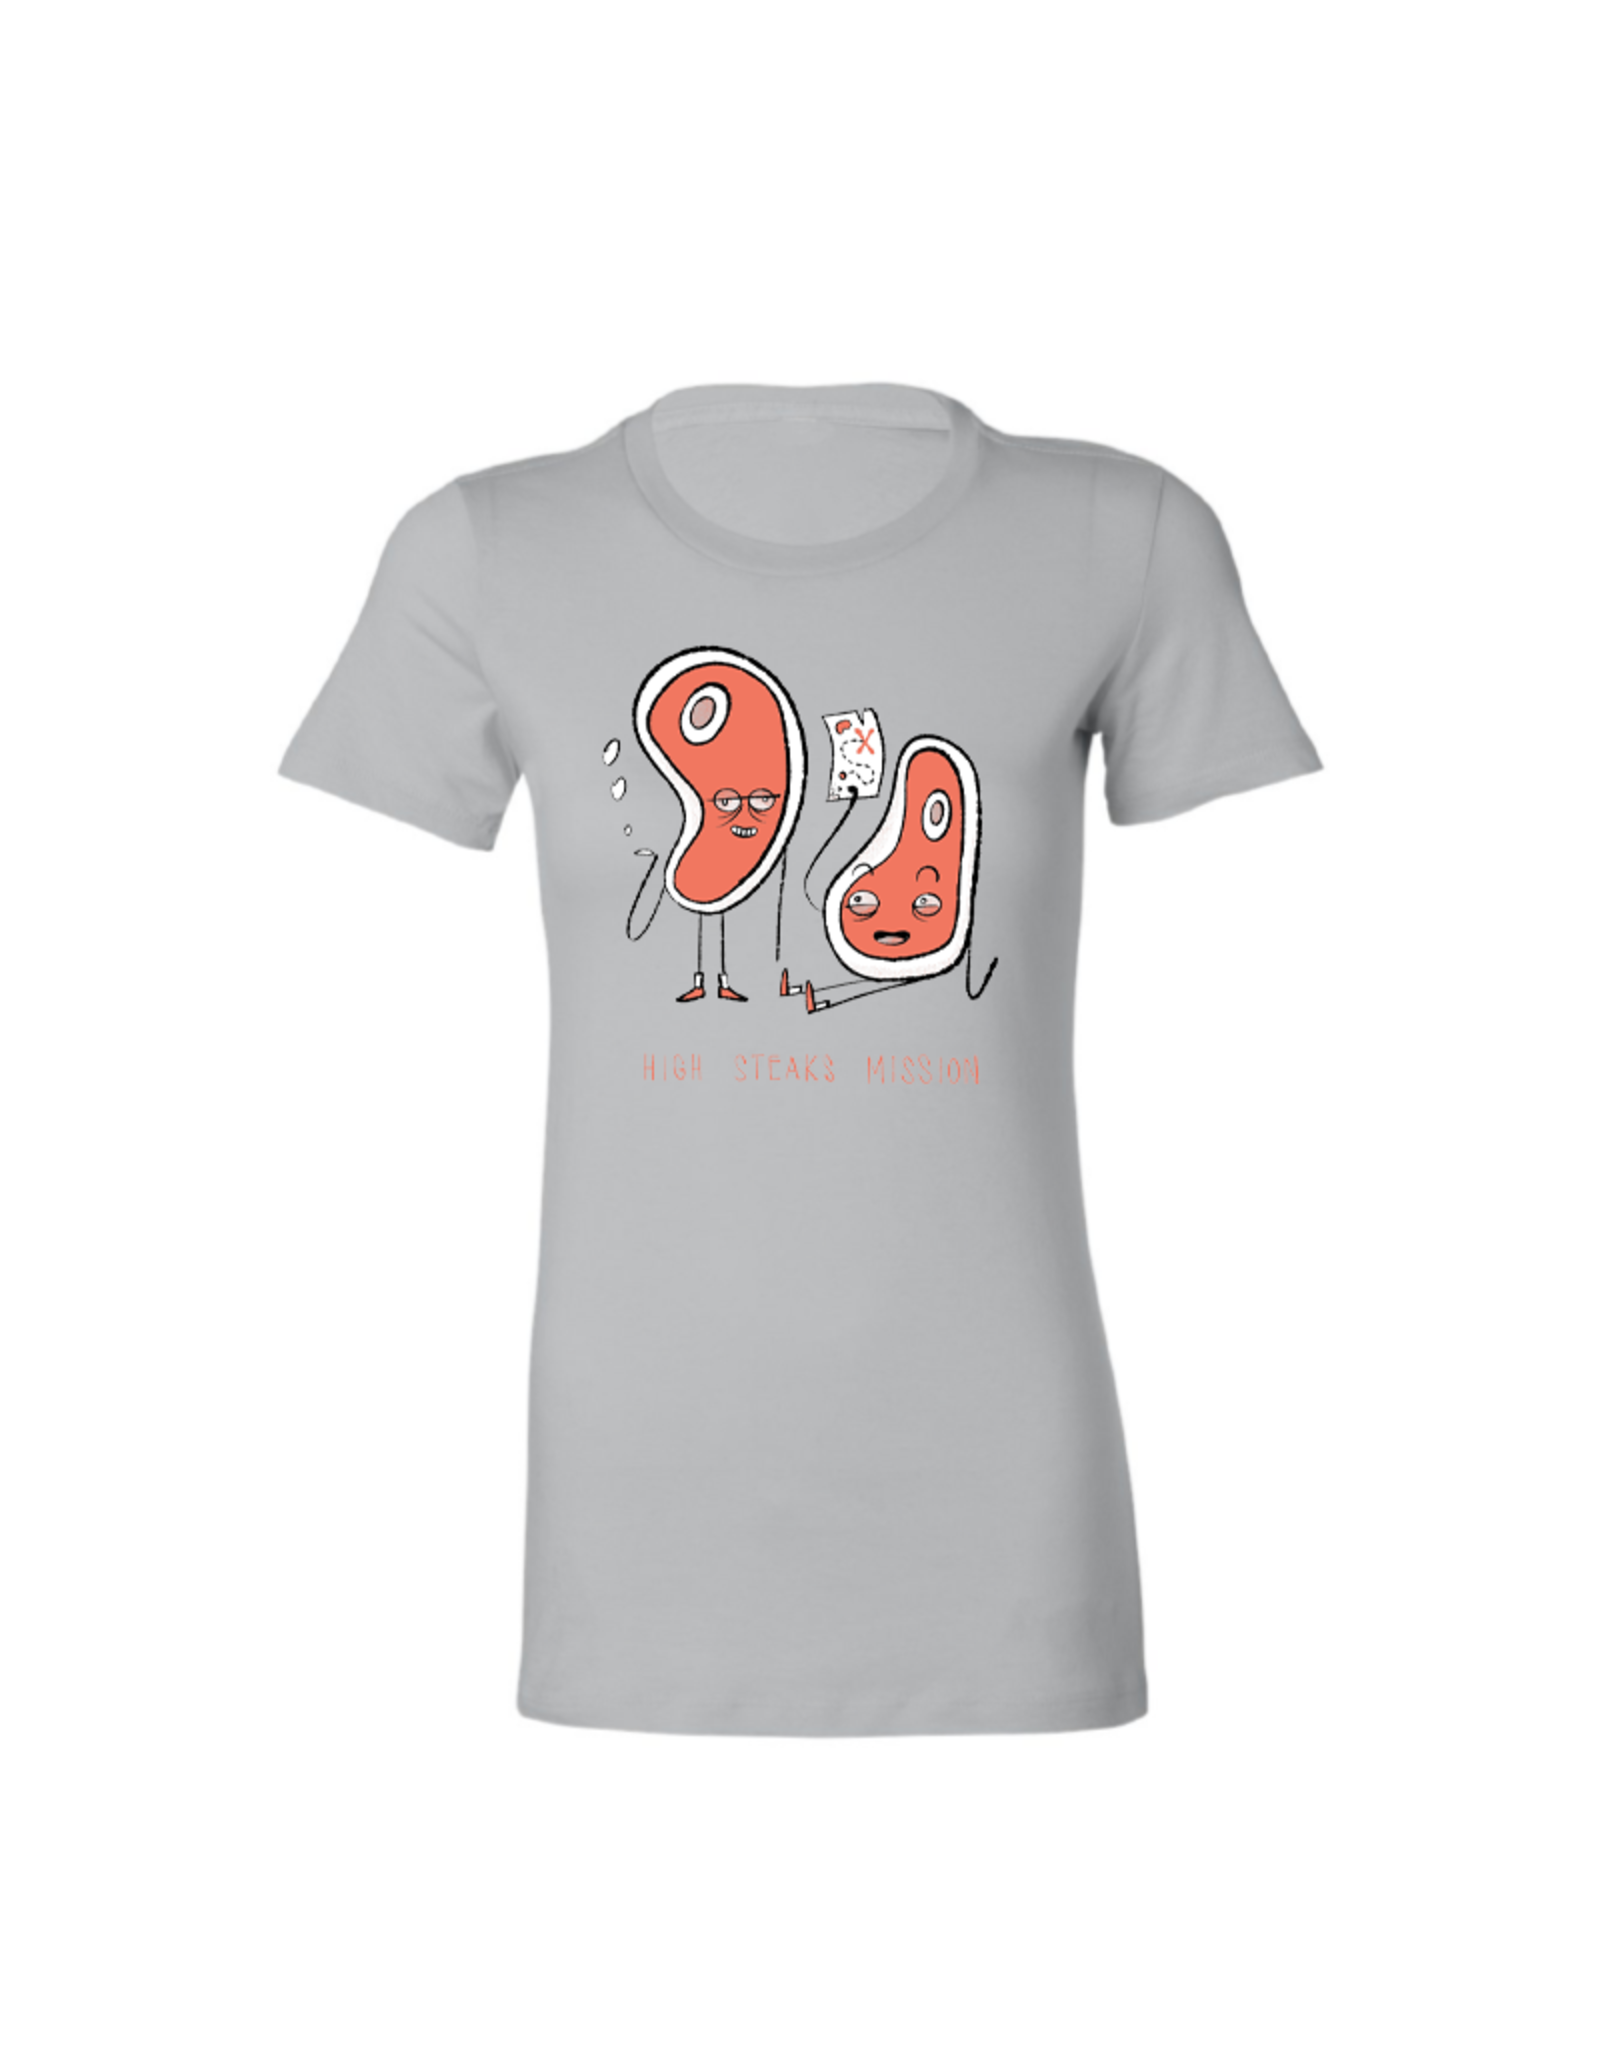 High Steaks Mission by Evan Lorenzen Women's Tee